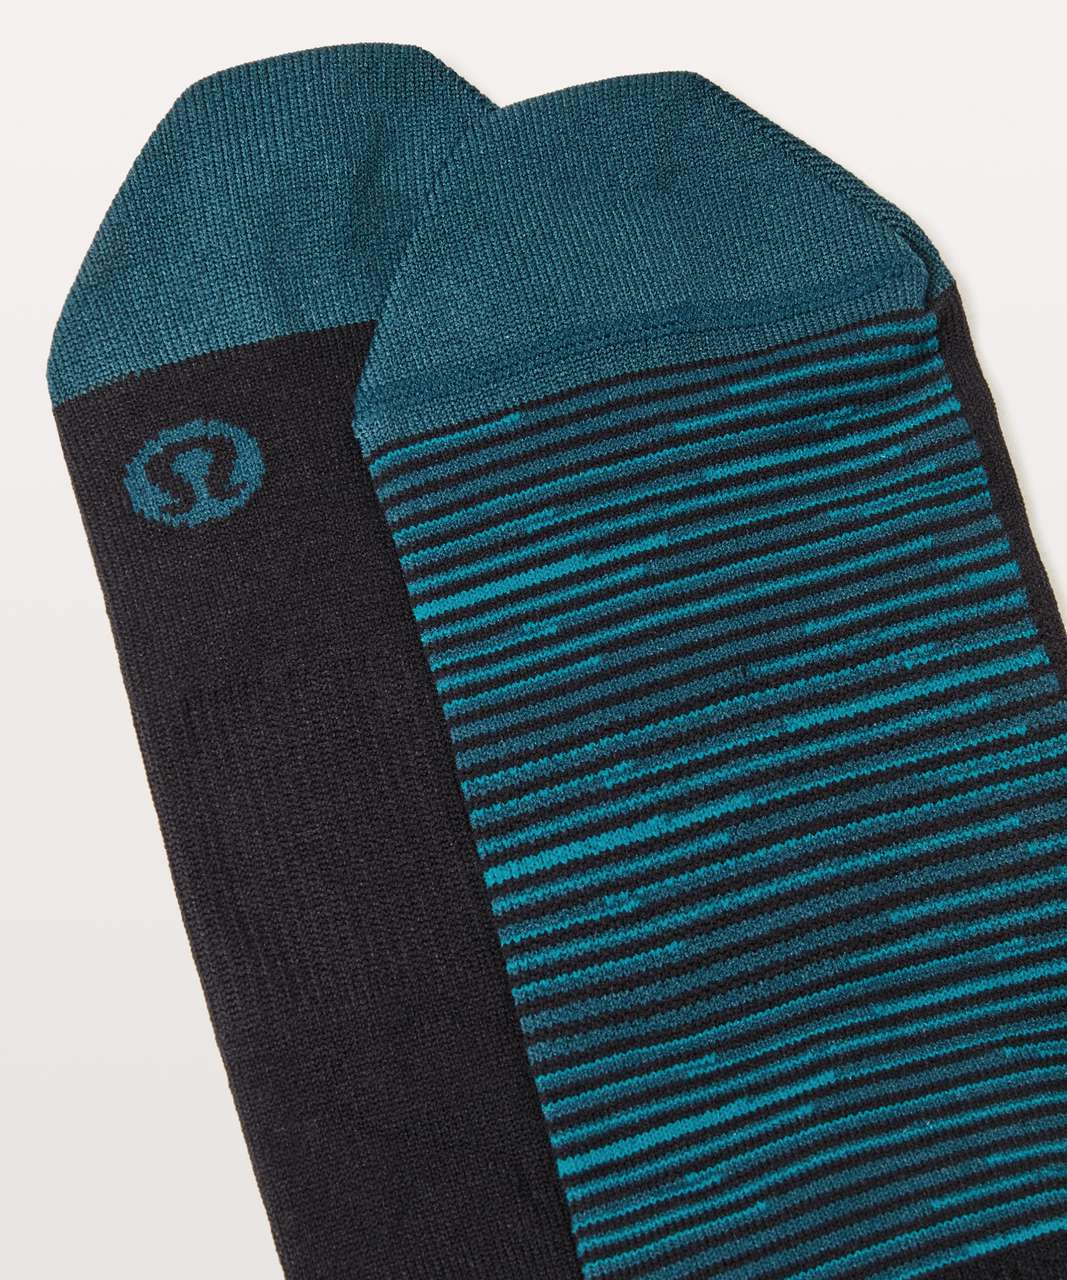 Lululemon Play All Day Sock - Dark Maritime / Cyprus / Black